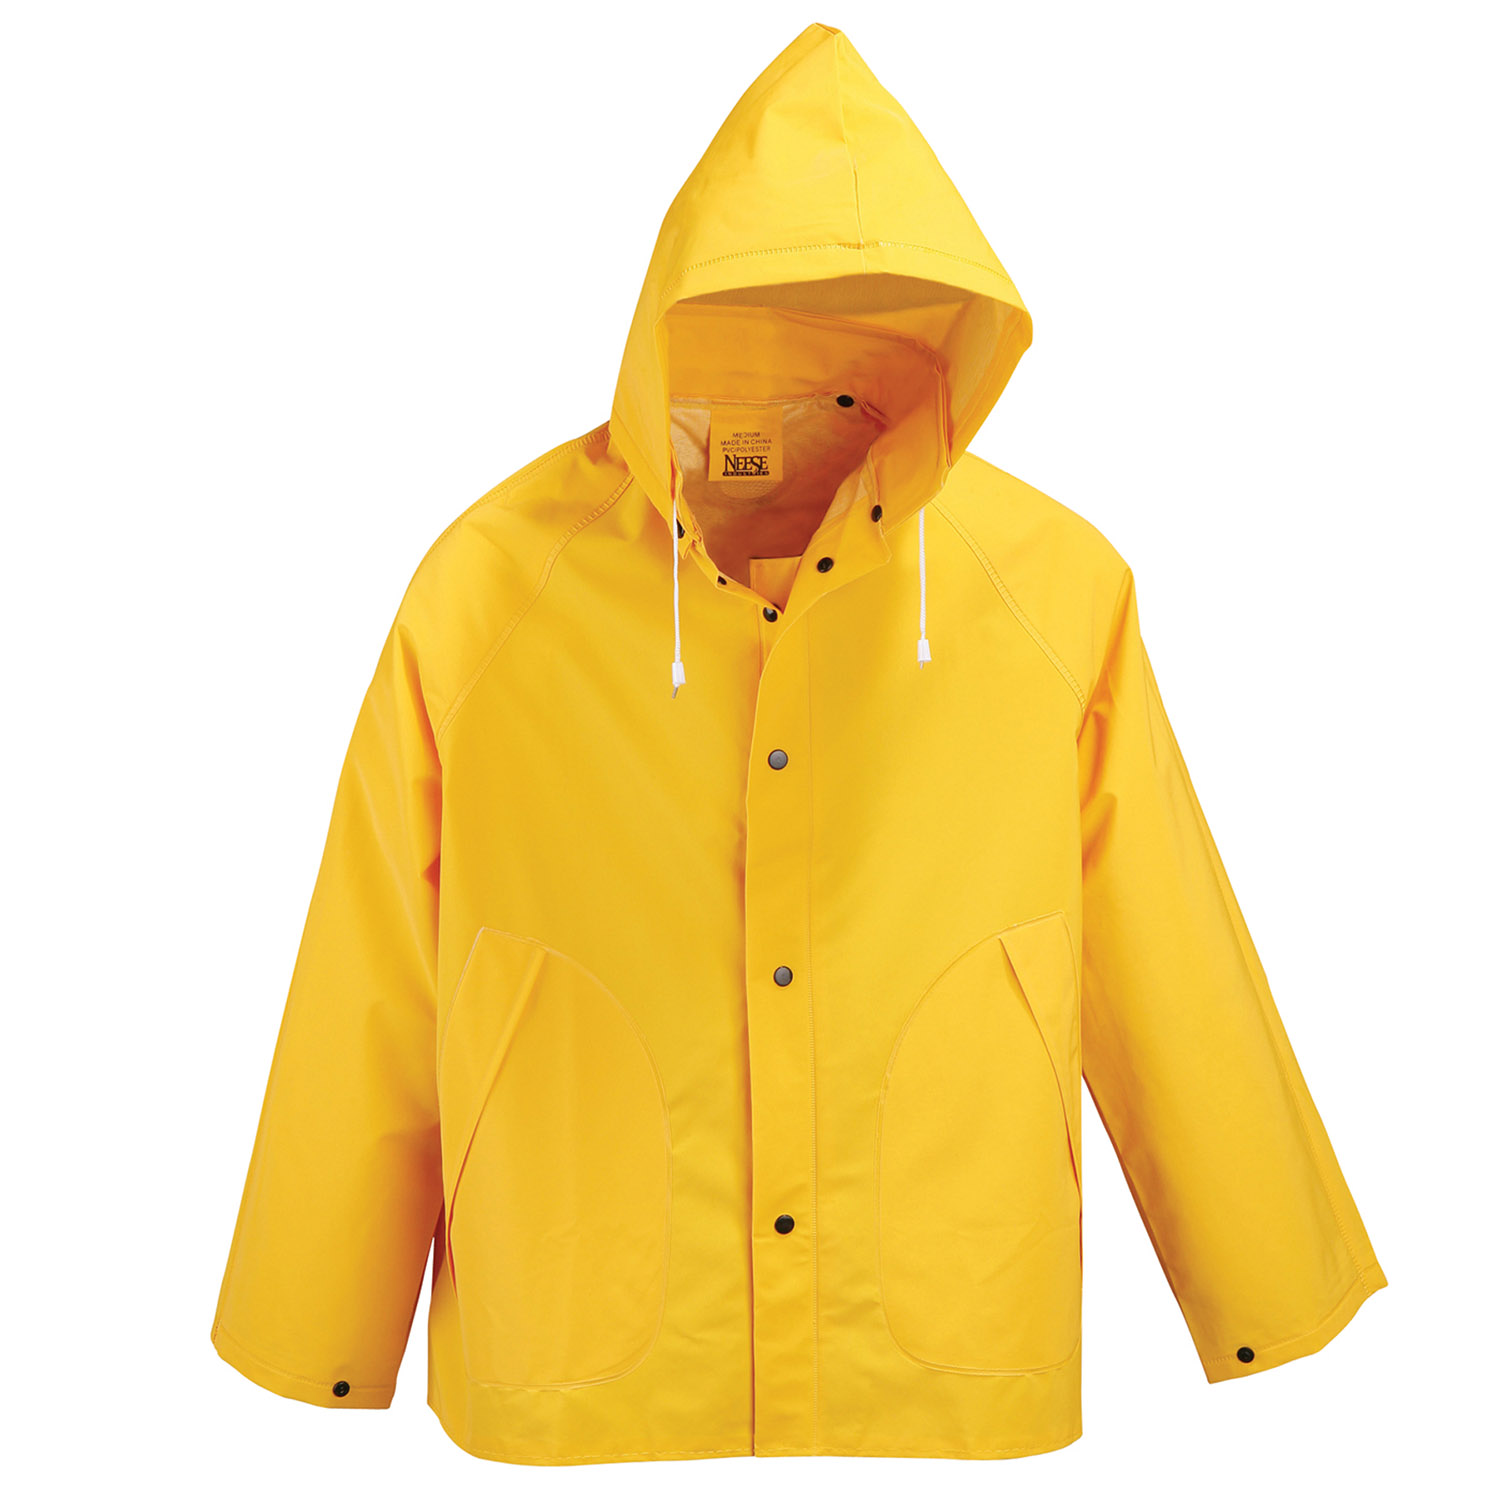 Rainwear | Rain Jackets | Rain Coats | Rain Suits